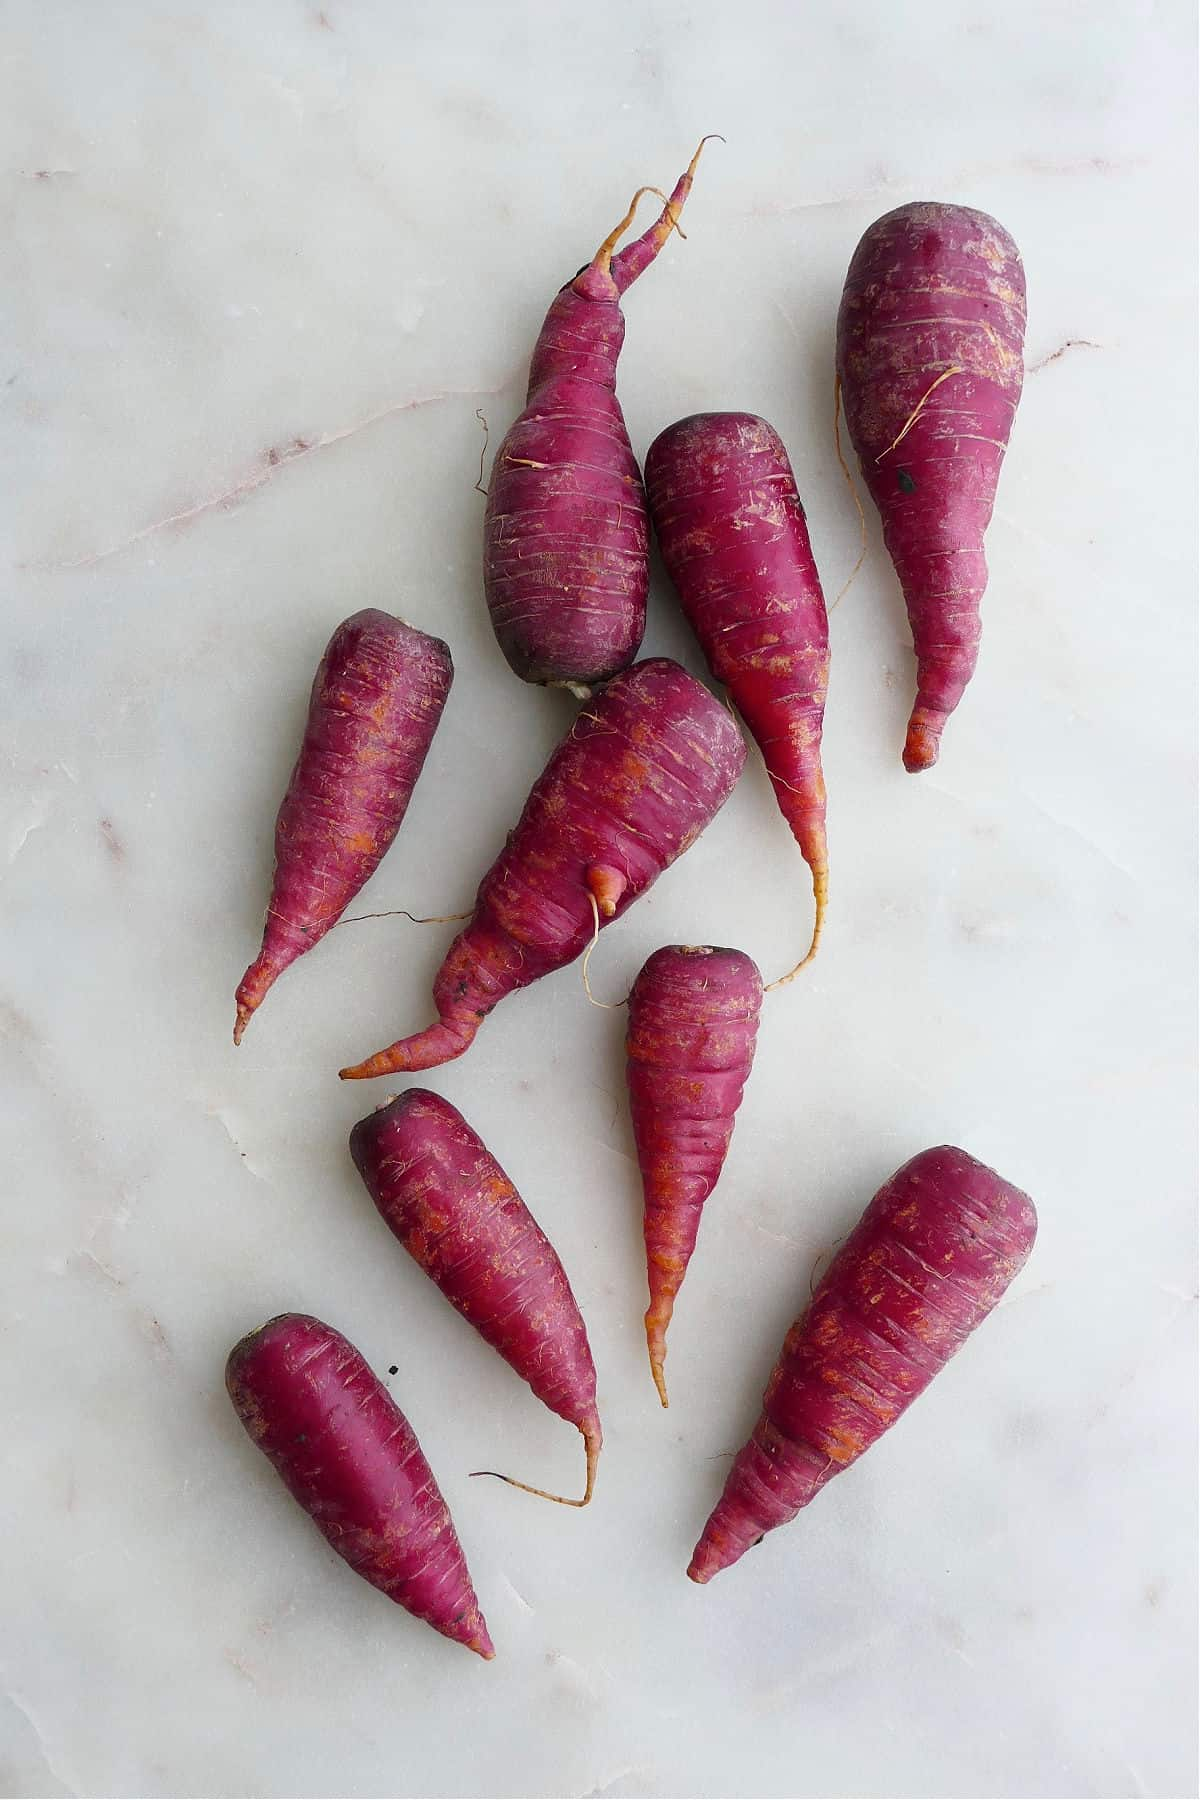 nine cosmic purple carrots spread out next to each other on a white counter